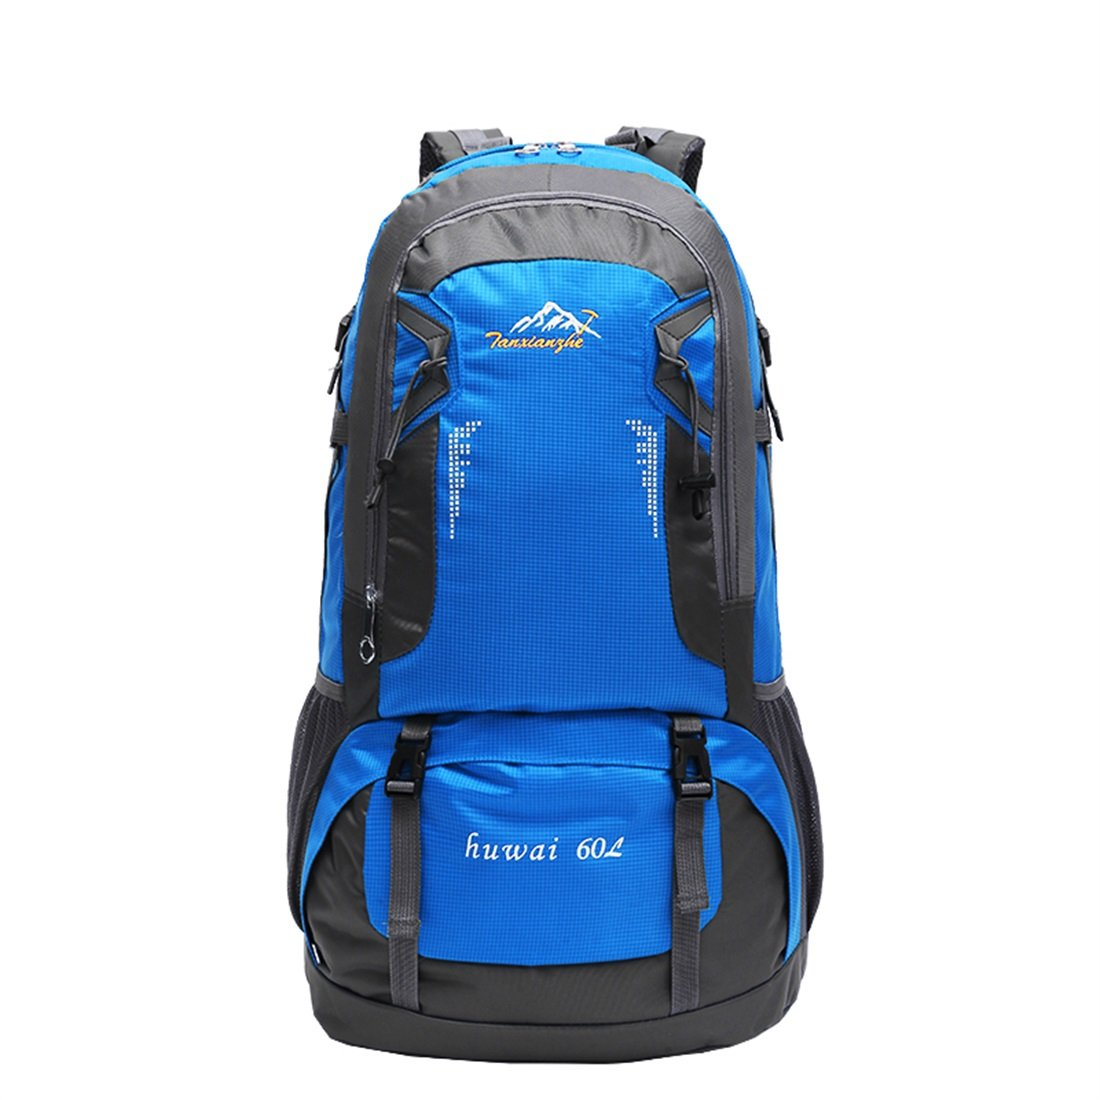 2d6aa8dc8fec Amazon.com : LJ Sport 60L Large capacity Hiking Travel Backpack ...